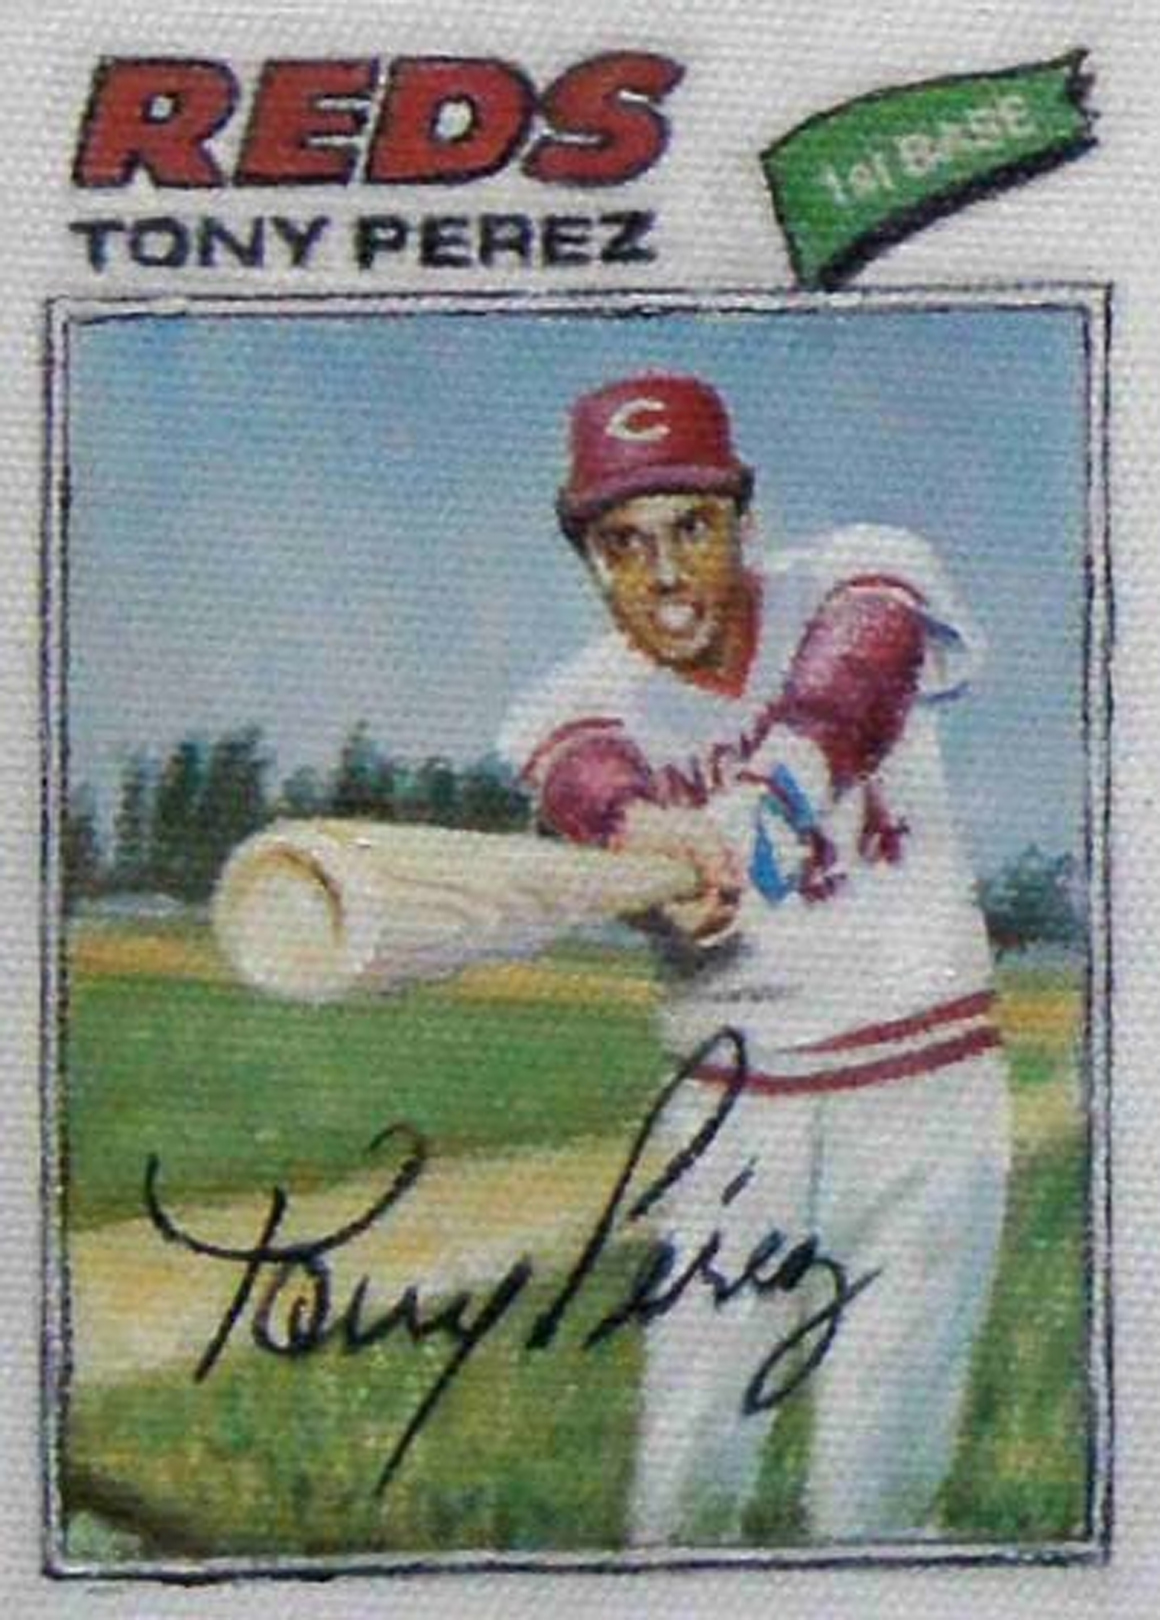 "<p><span class=""name"">Jim Thompson</span><br><em>Tony Perez (1977 series)</em><span class='media'>oil on canvas</span>4 x 3 in (10.2 x 7.6 cm)<br>2012<br></p>"